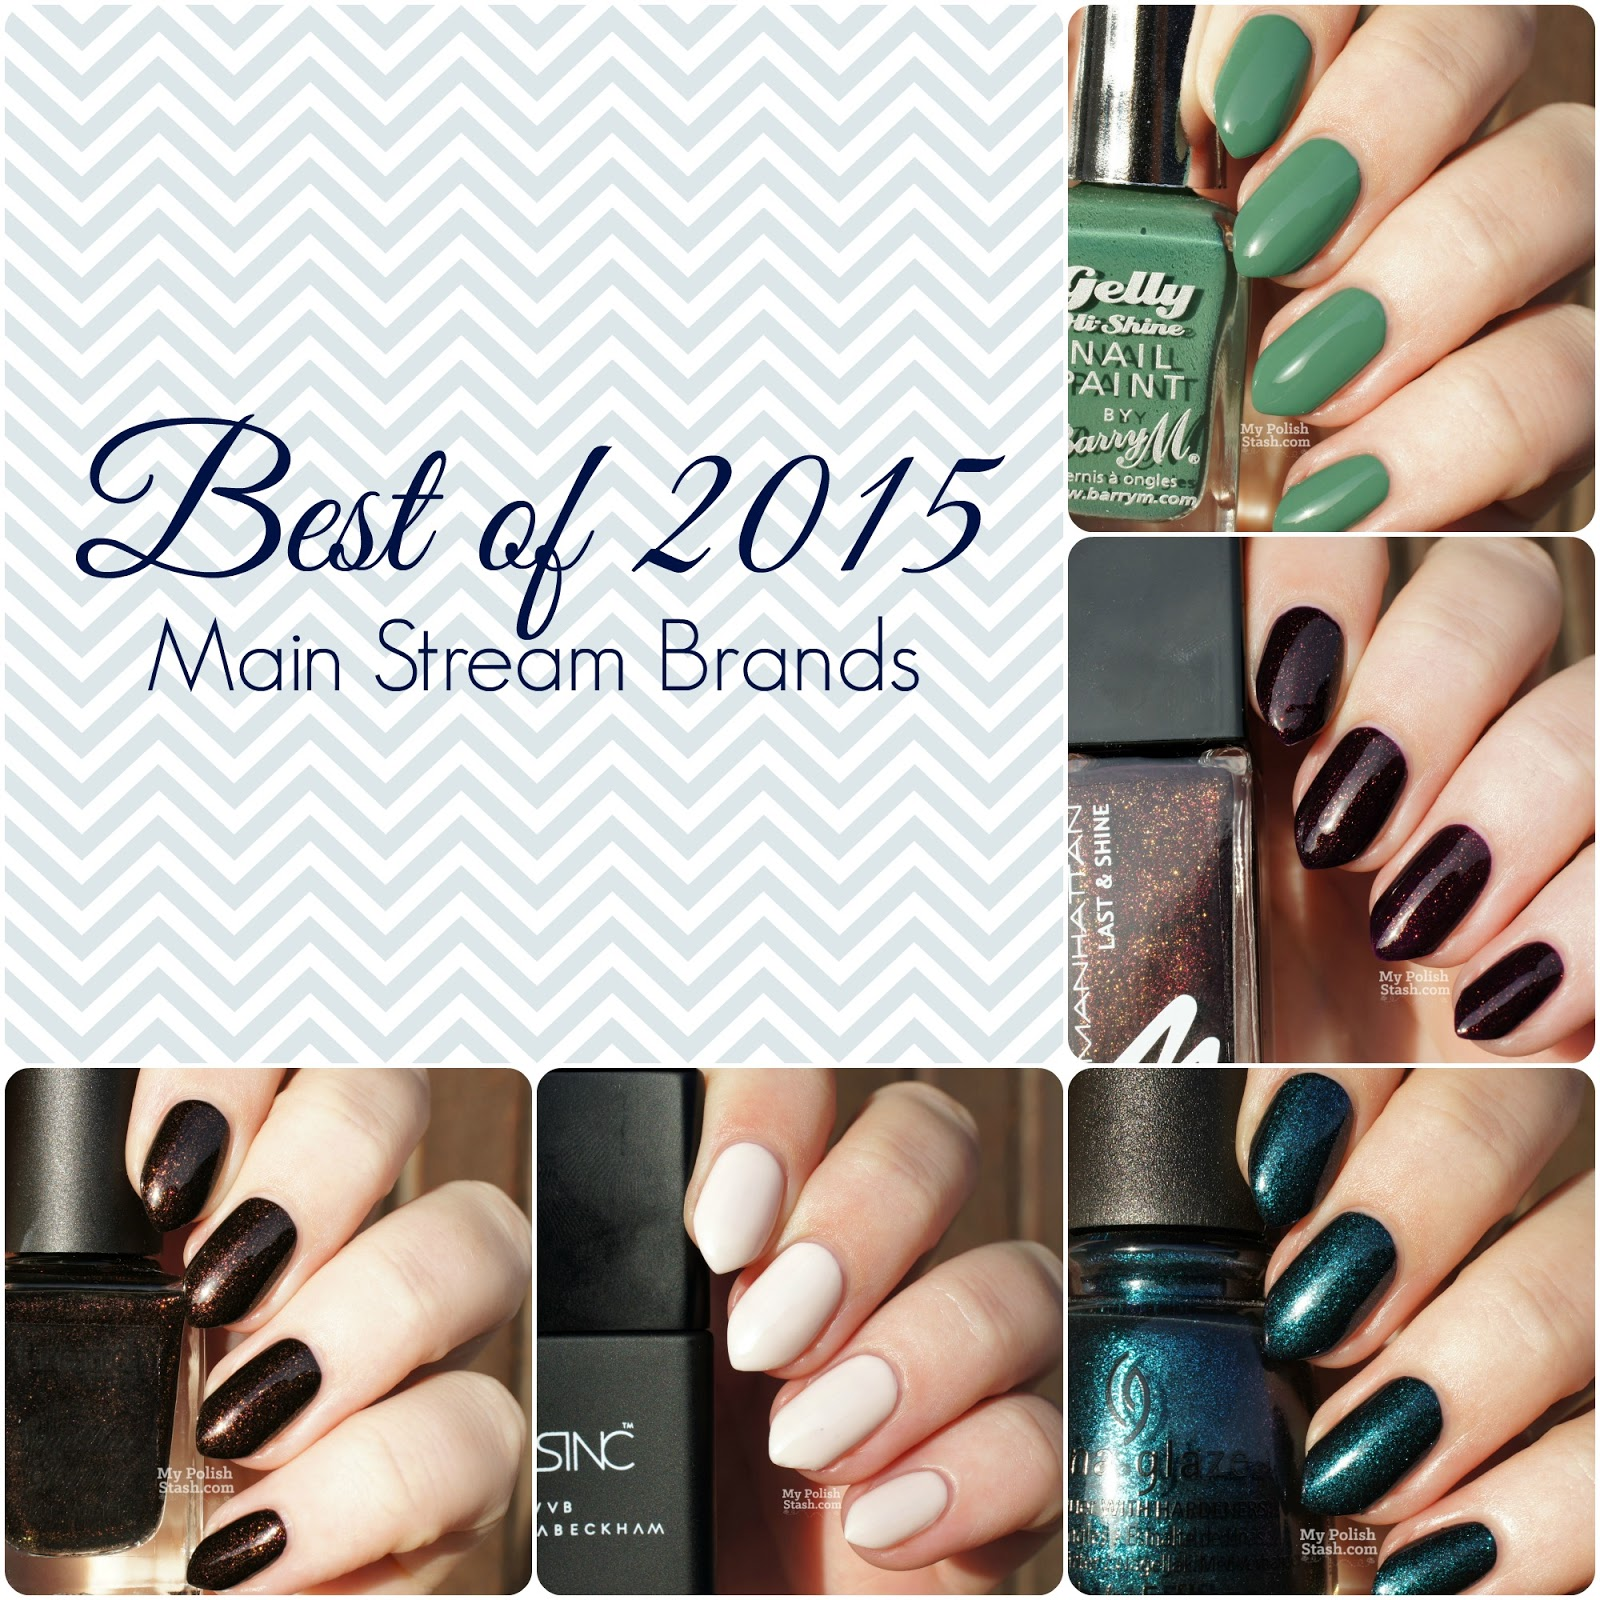 My Polish Stash: Best of 2015 - My Favorite Main Stream Nail Polishes